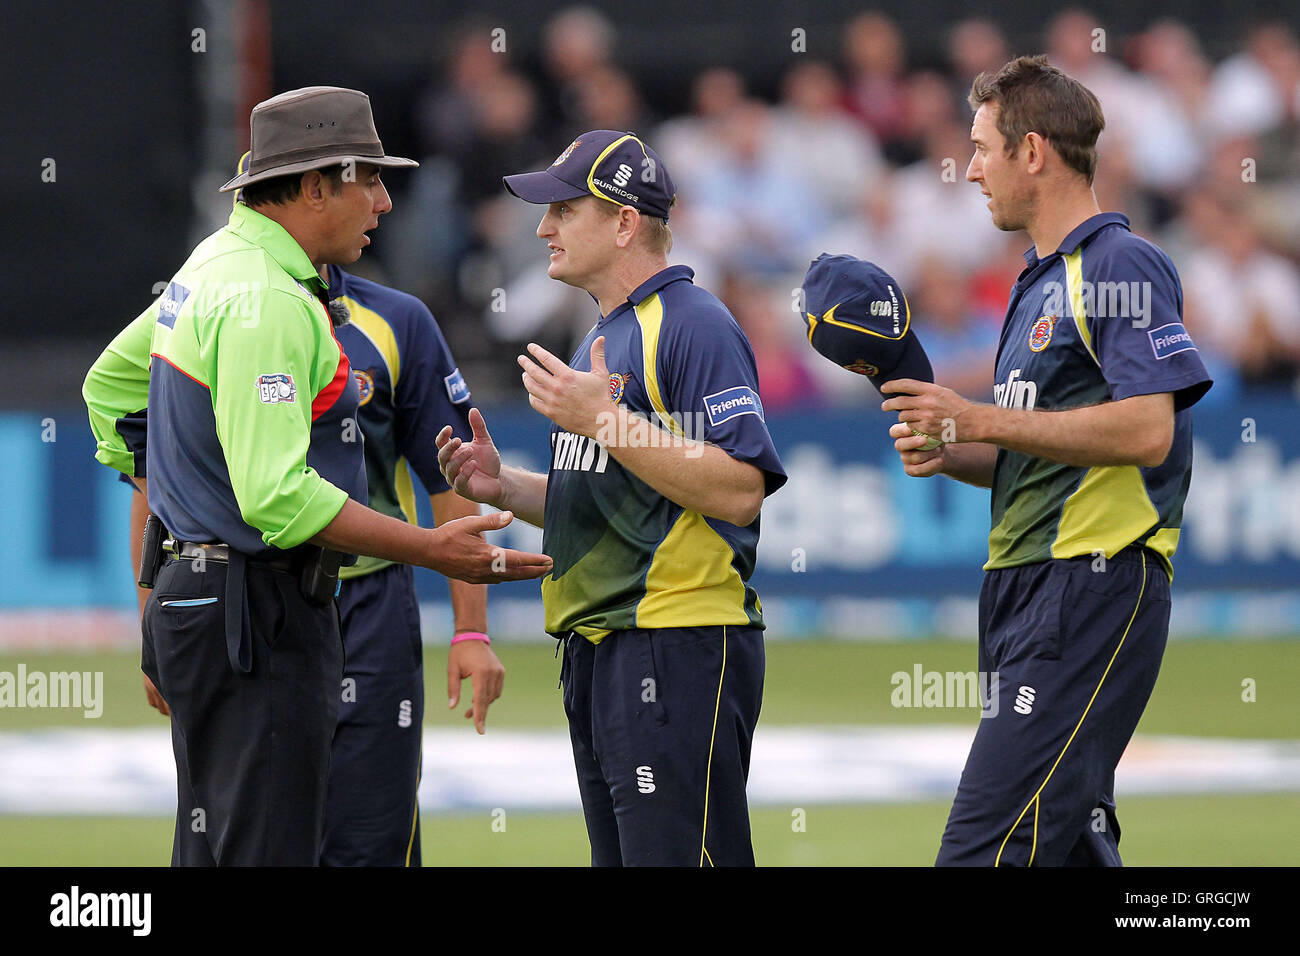 Scott Styris of Essex protests to umpire David Millns after the wicket of Darren Stevens is ruled out - Essex Eagles - Stock Image